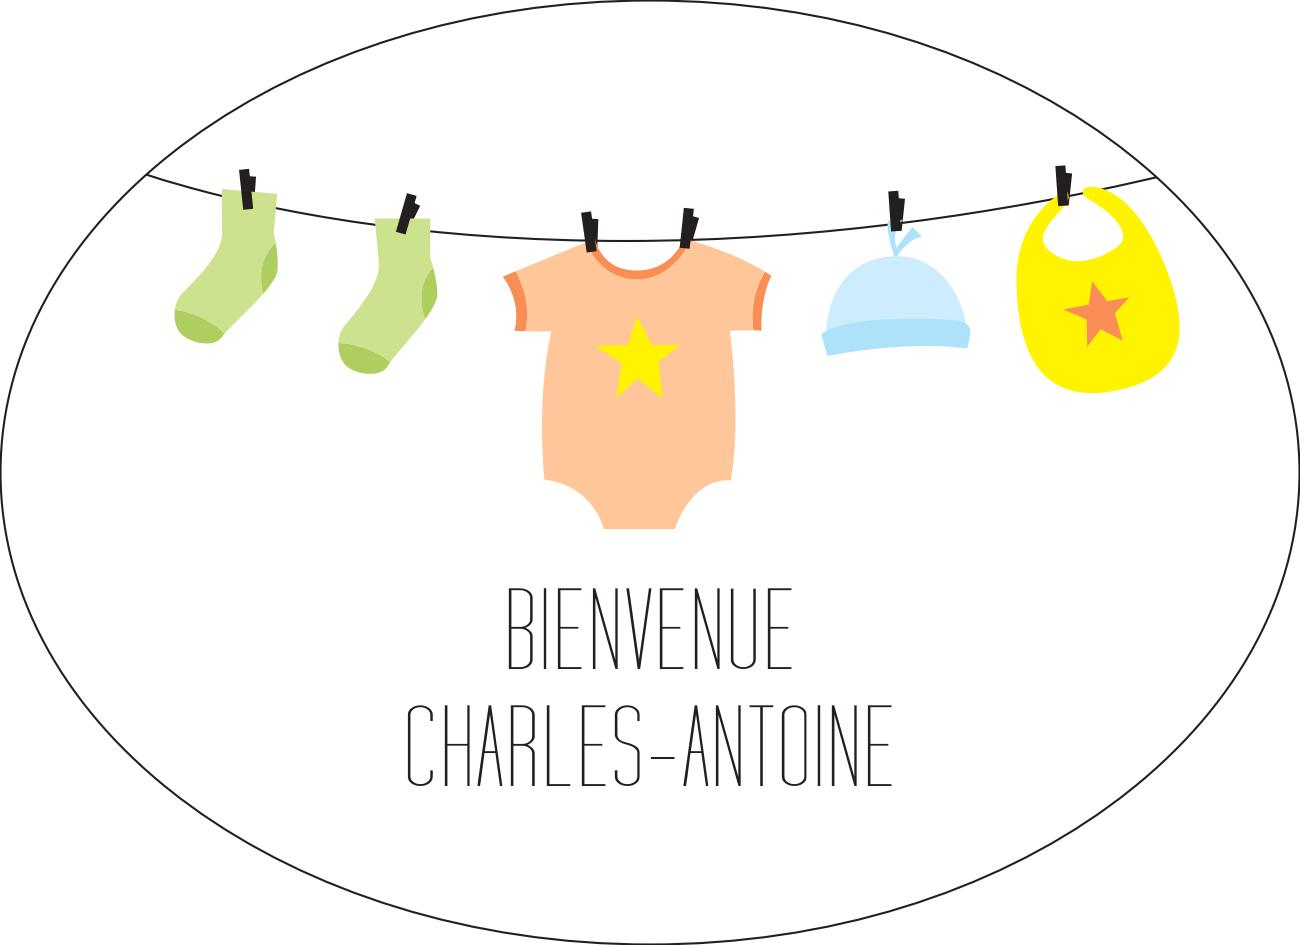 birth-charles-antoine_has-image